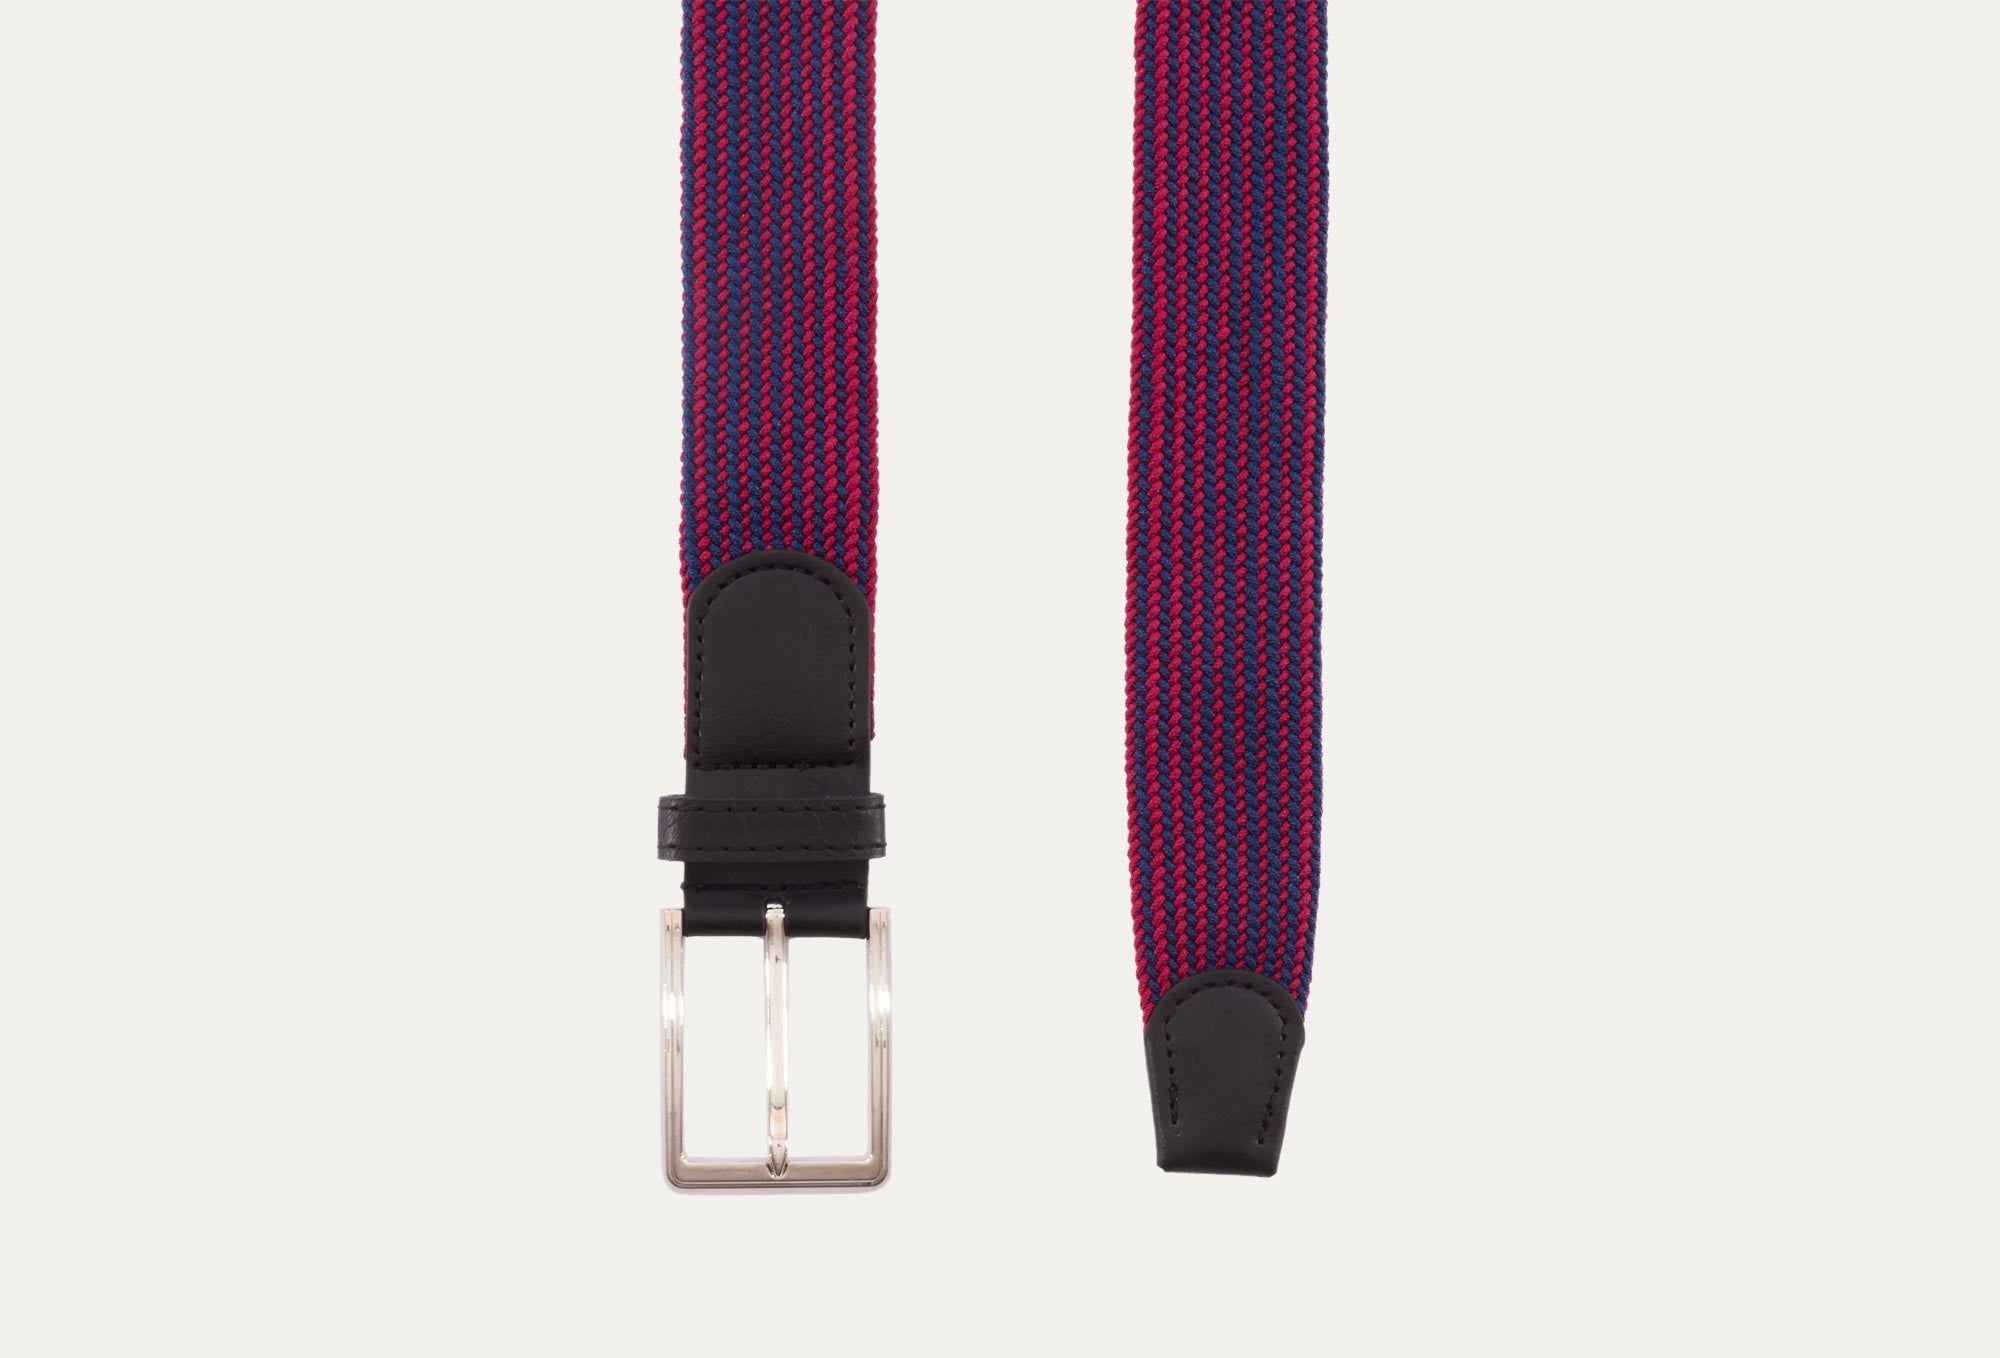 Bolton Braided Belt